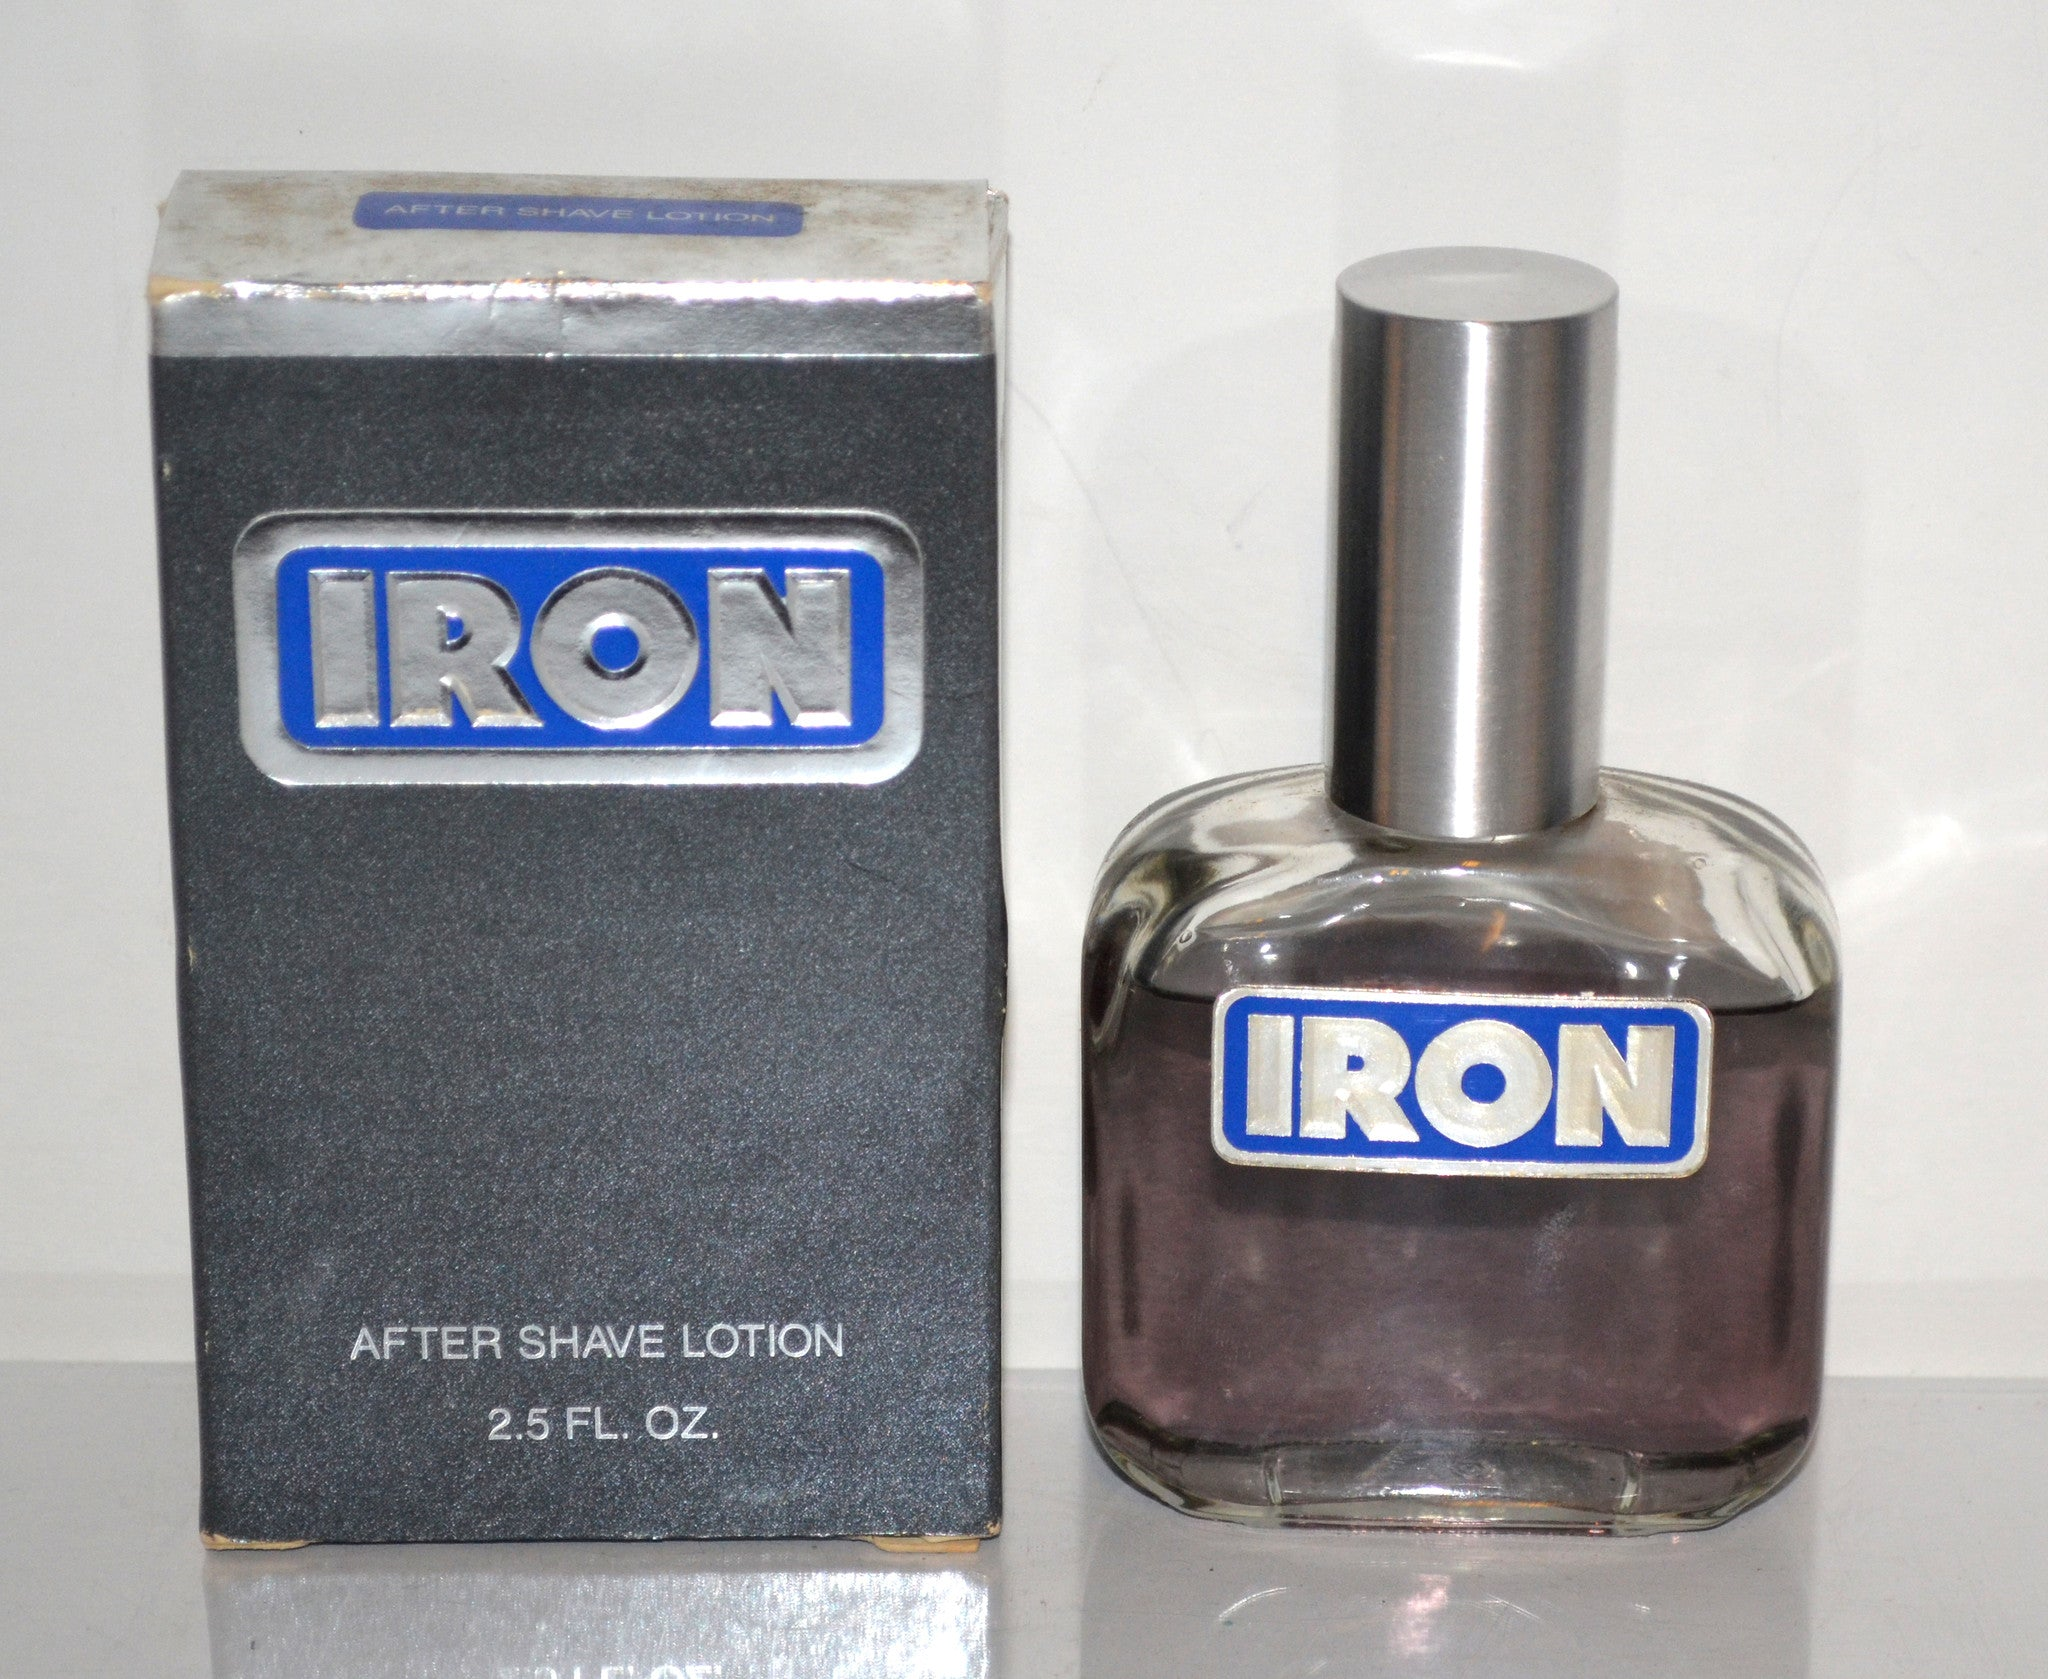 Coty Iron After Shave